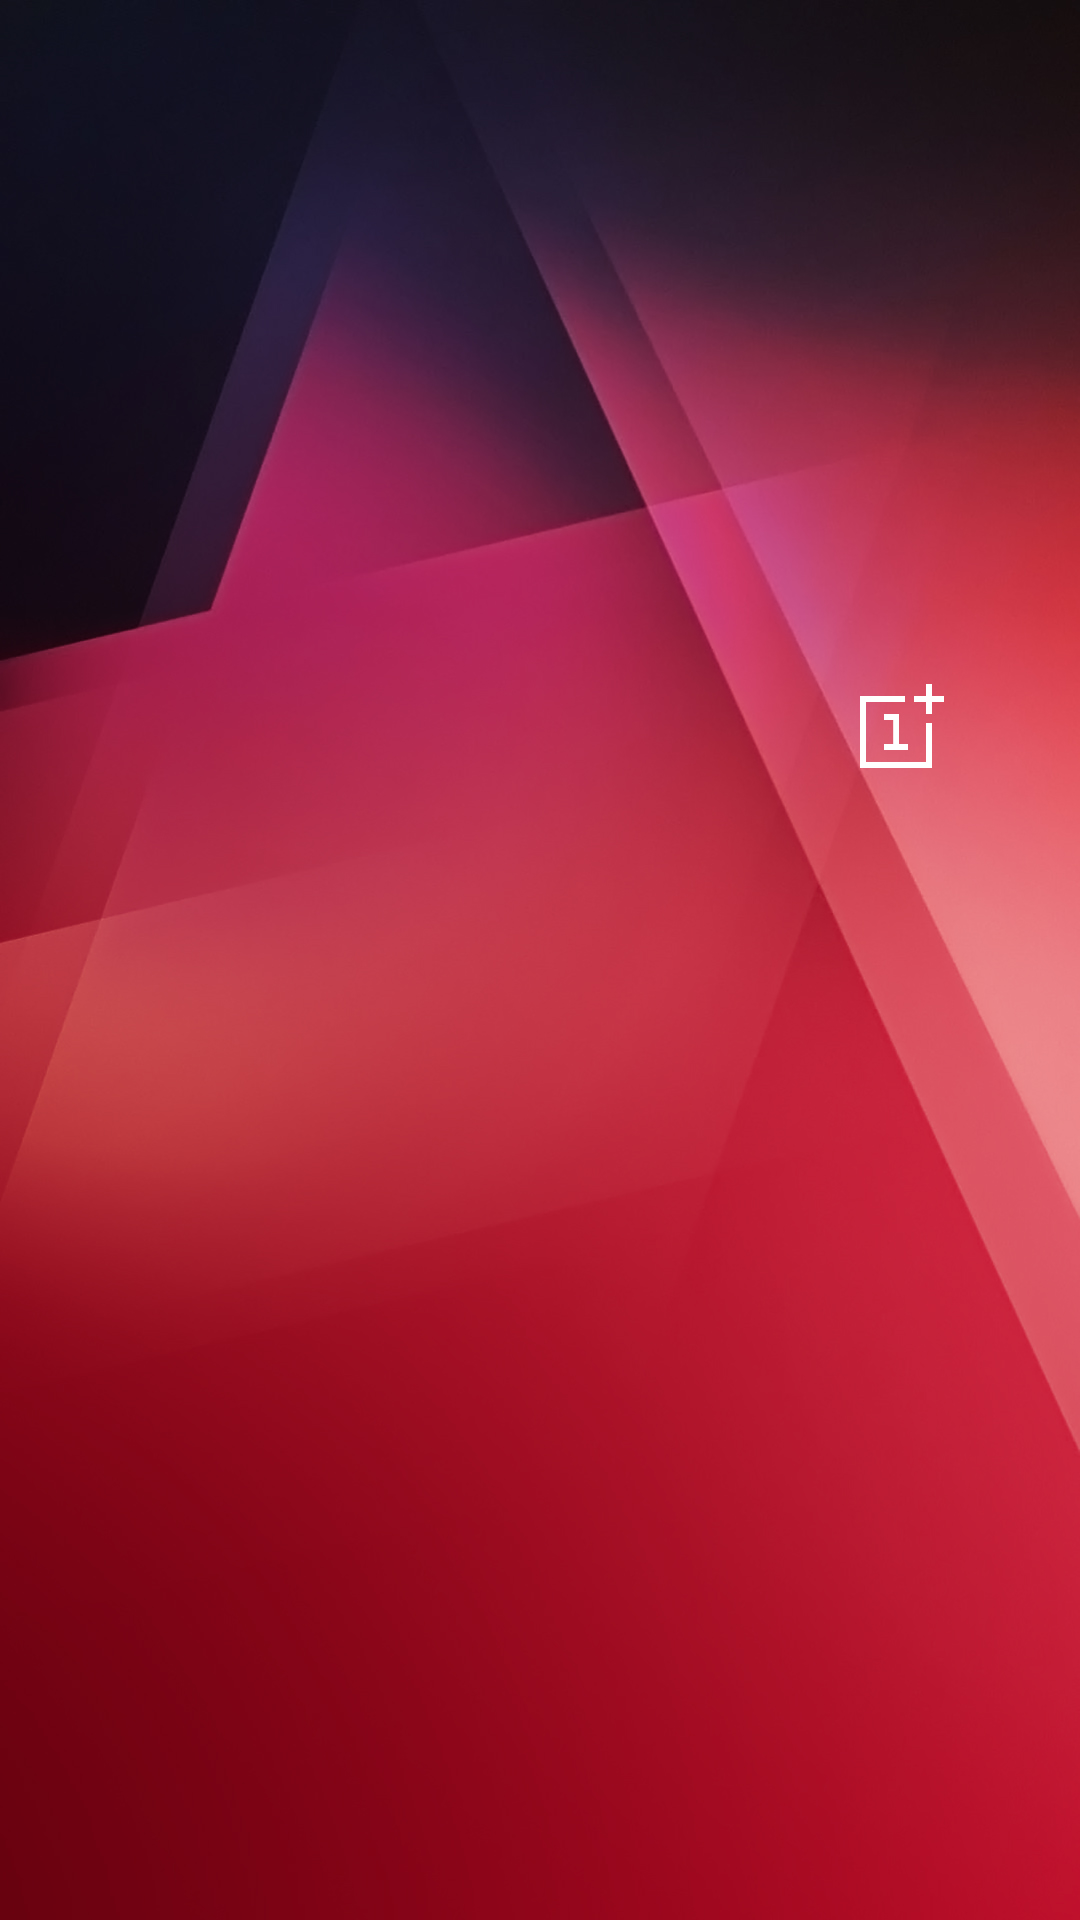 Oneplus One Wallpapers On Behance